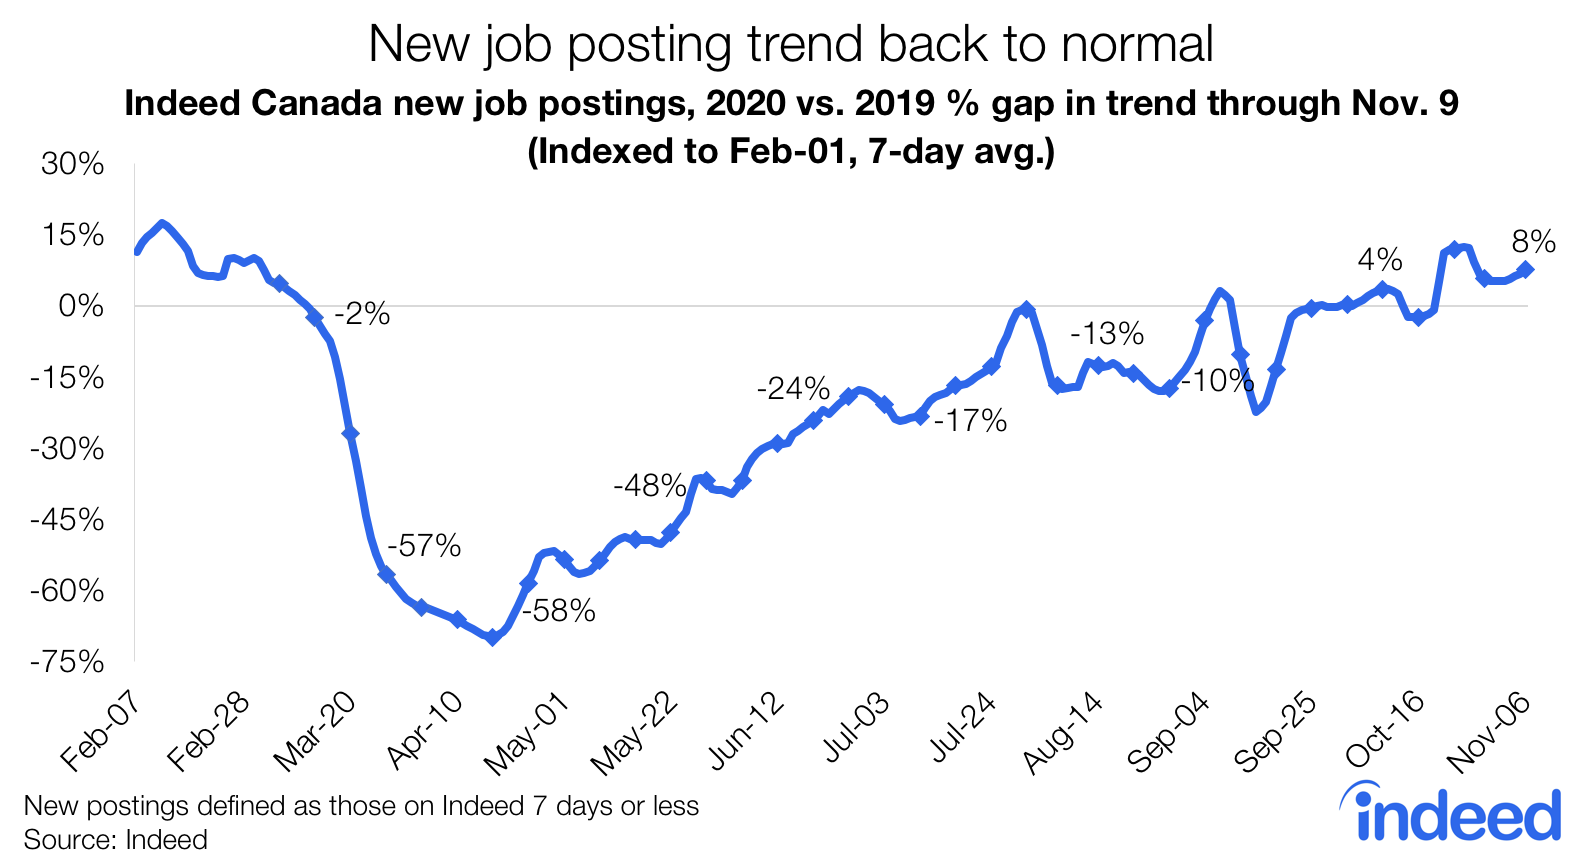 Line graph showing the new job posting trend getting back to normal since pandemic.